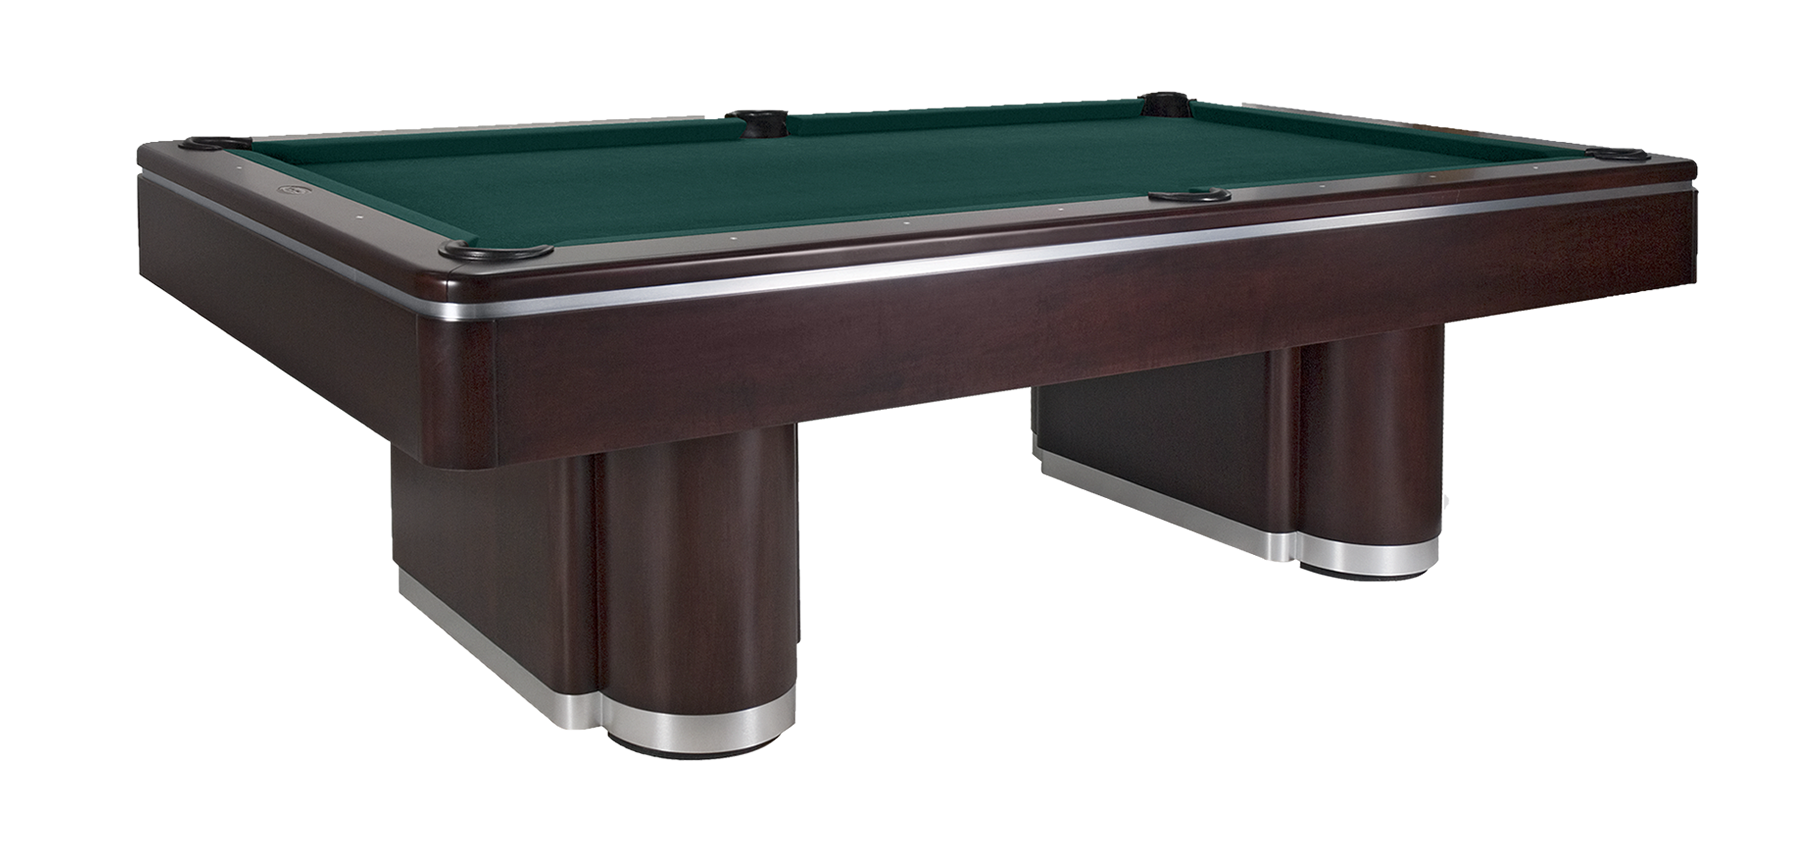 Furniture Auburn Al ... Gallery - Pool Tables and Home Theater Seating in Huntsville, AL